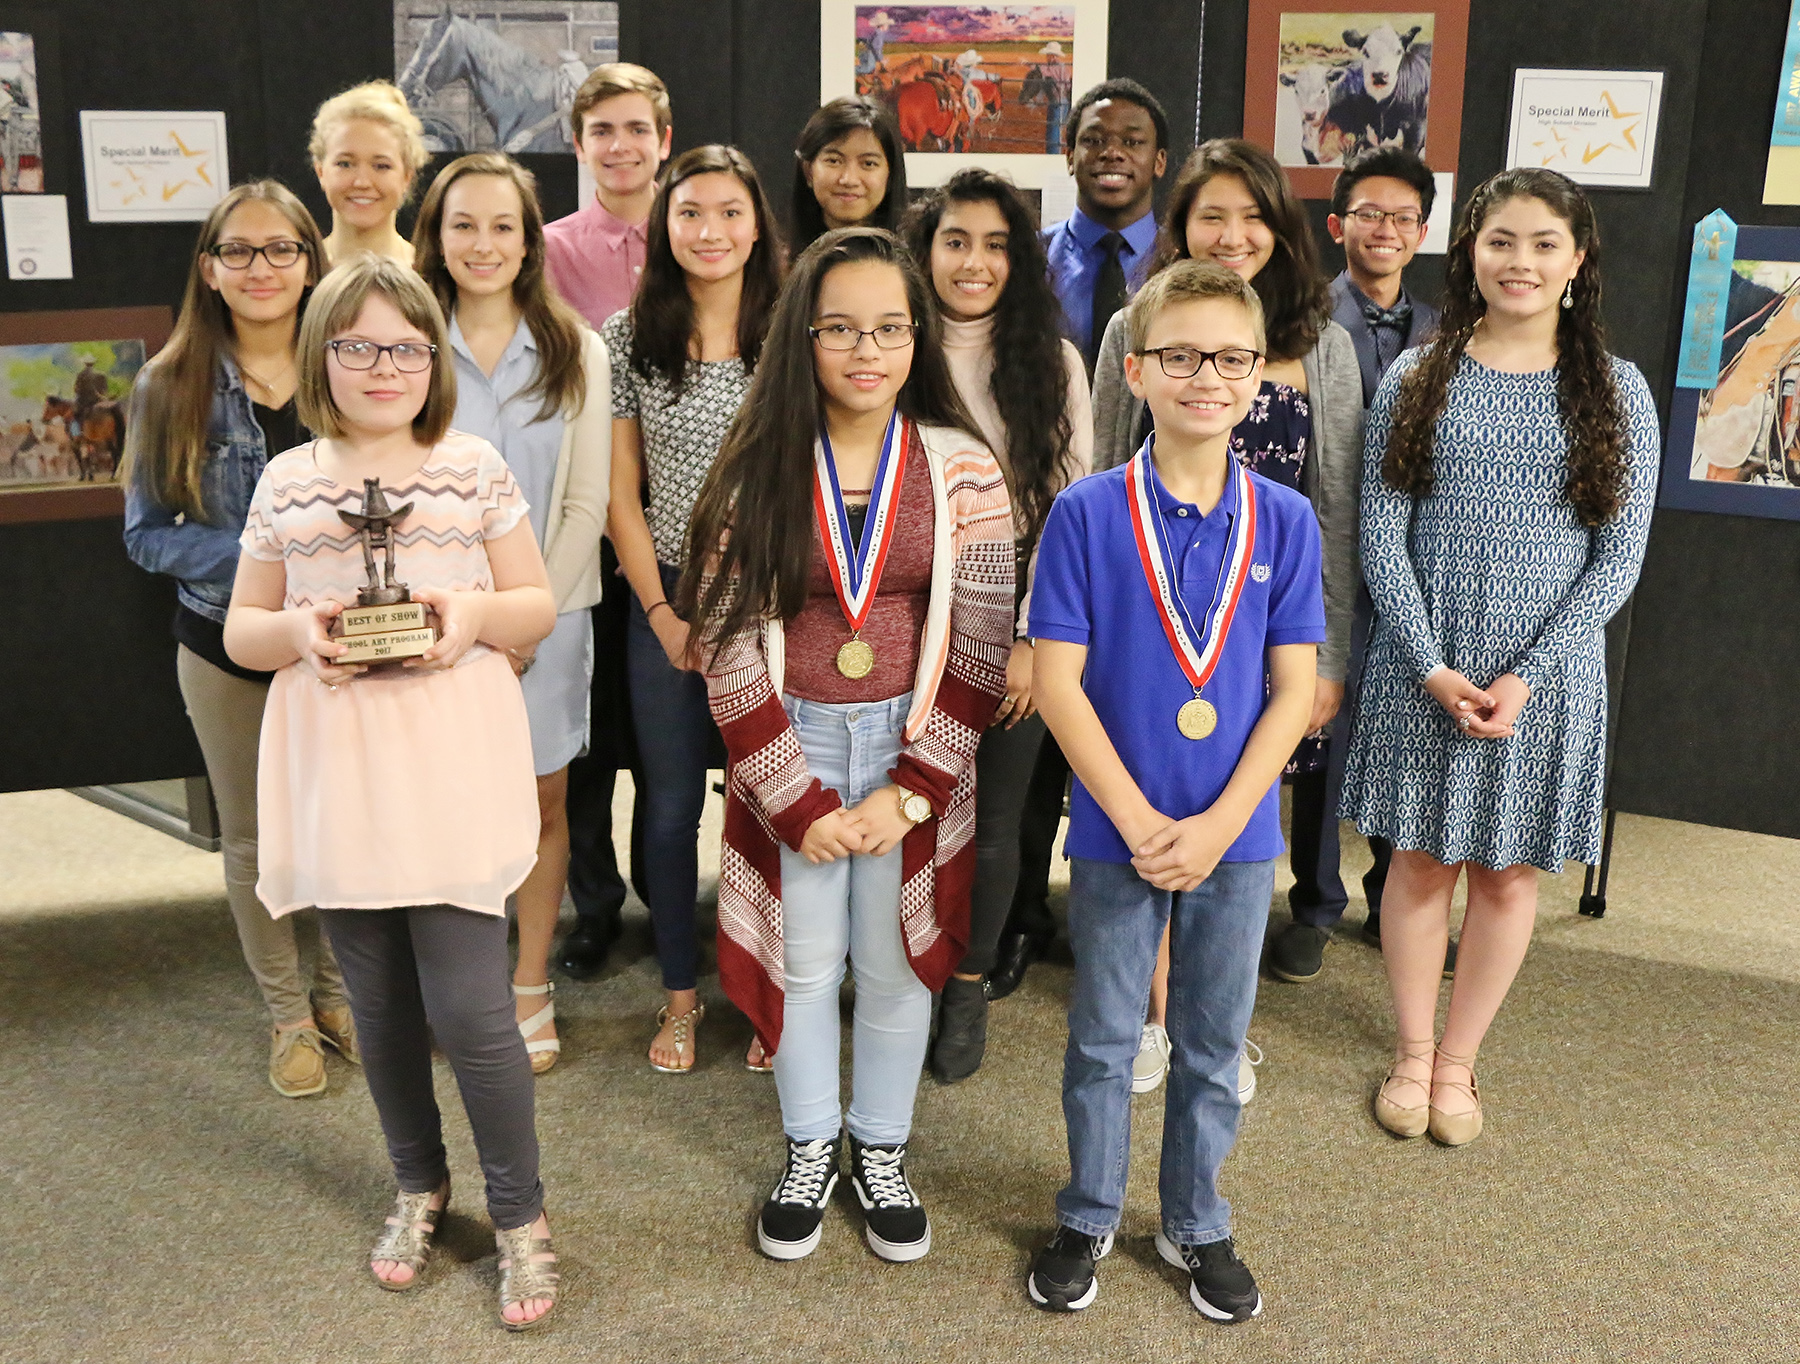 2017 art show winners